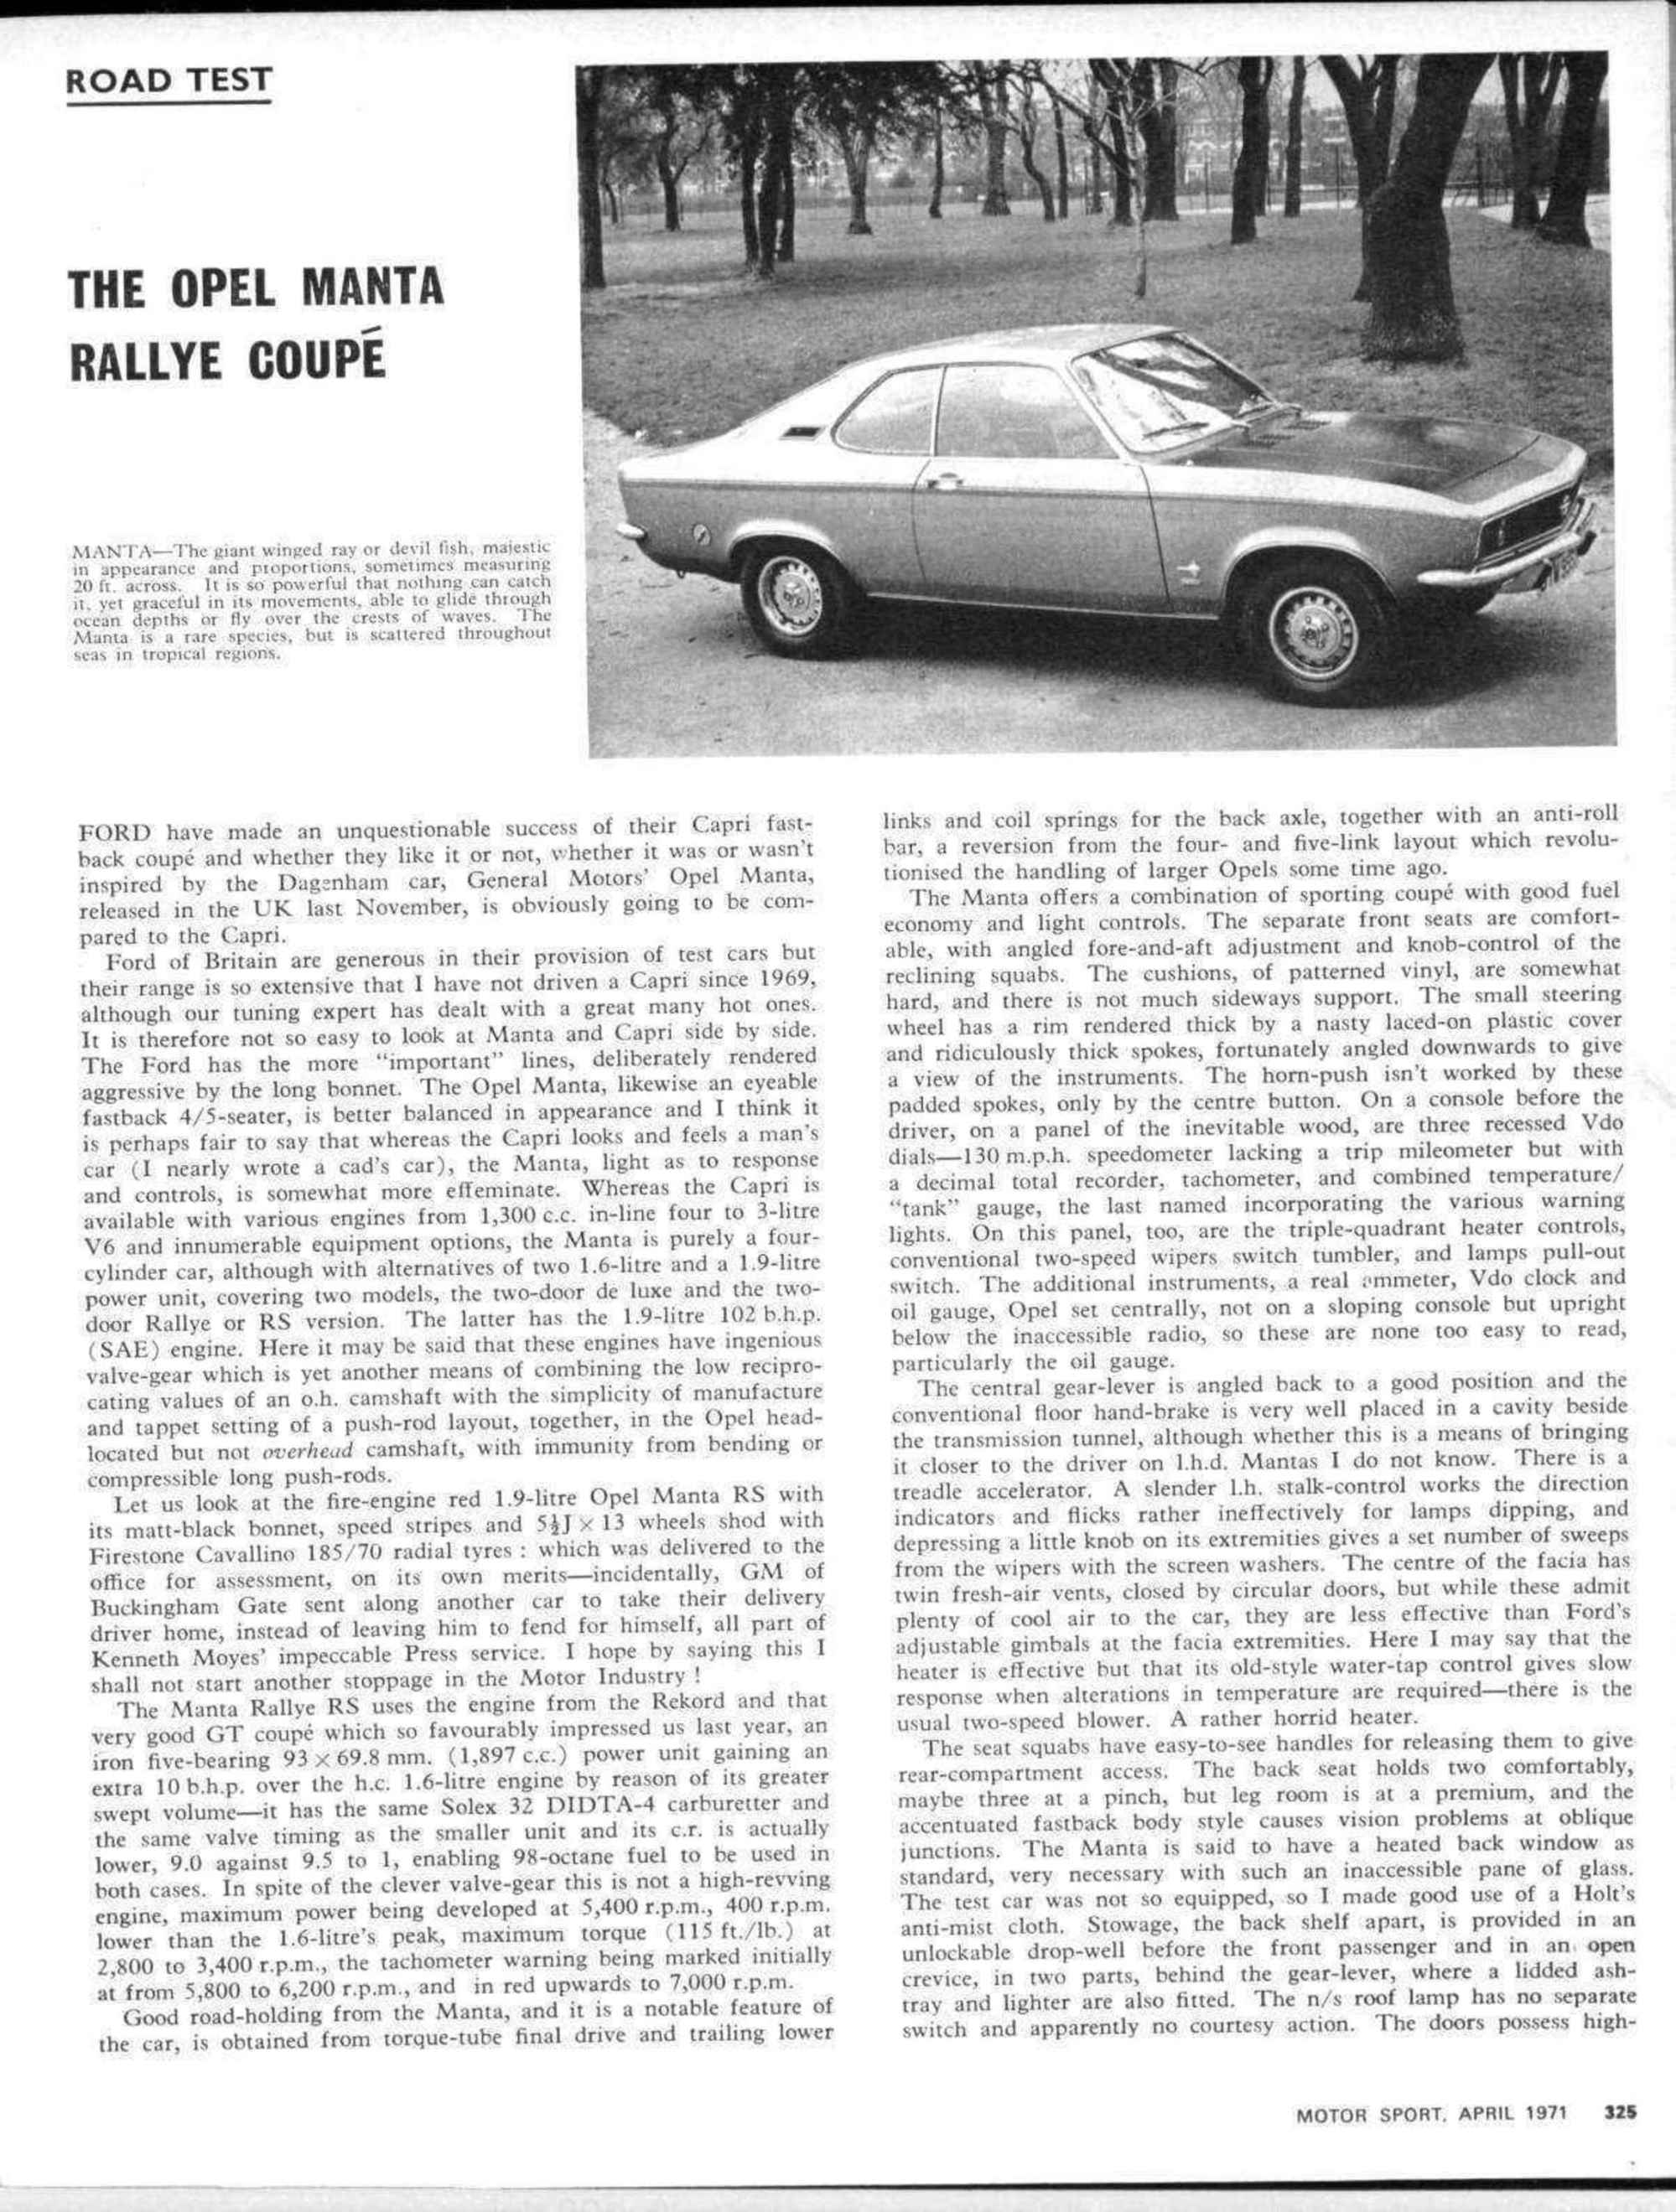 hight resolution of road test the opel manta rallye coup